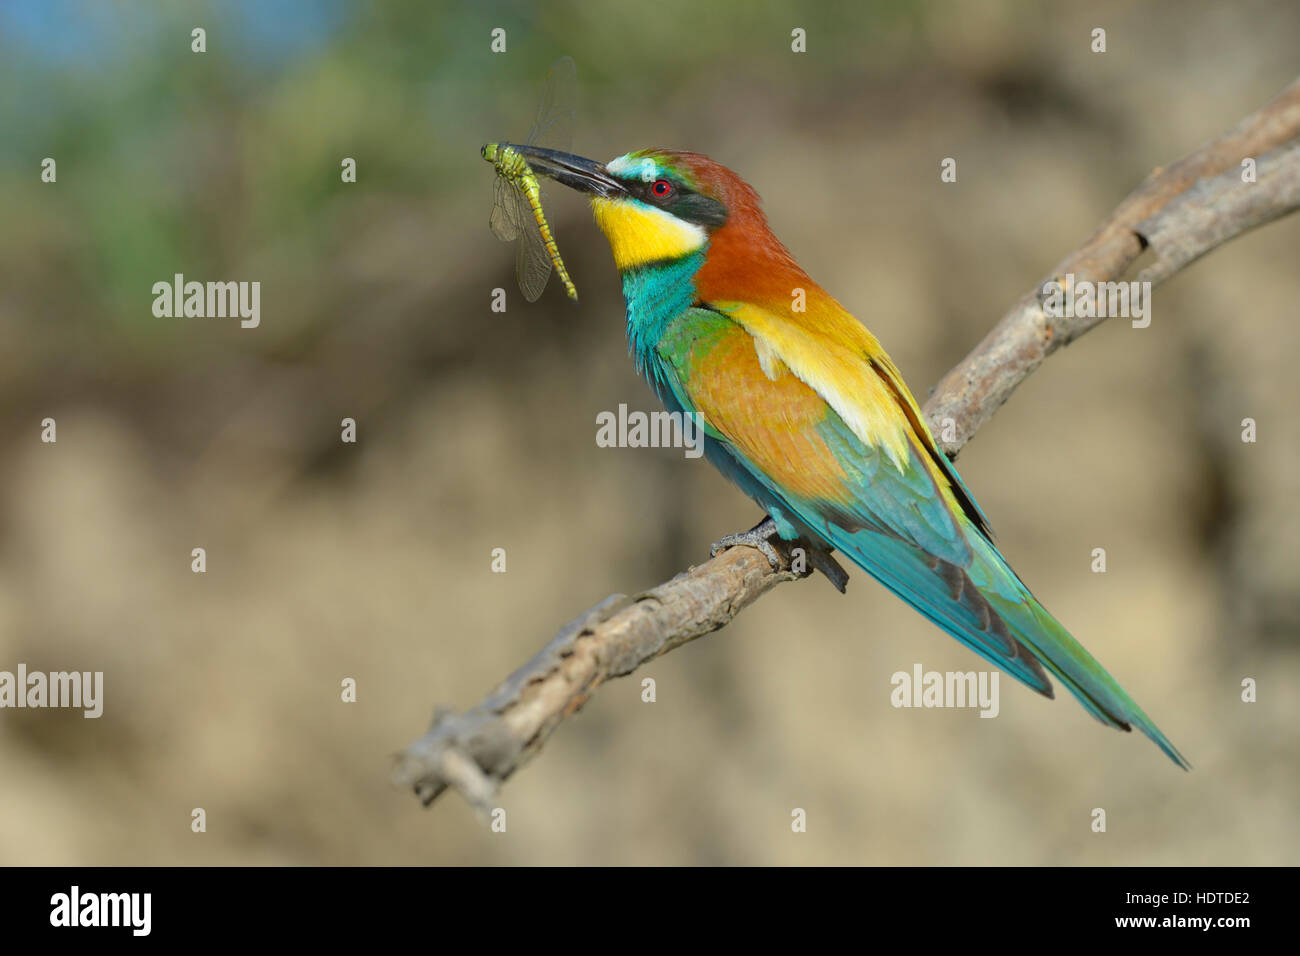 European bee-eater (Merops apiaster), sitting on branch with dragonfly in beak, Kiskunság National Park, Hungary Stock Photo